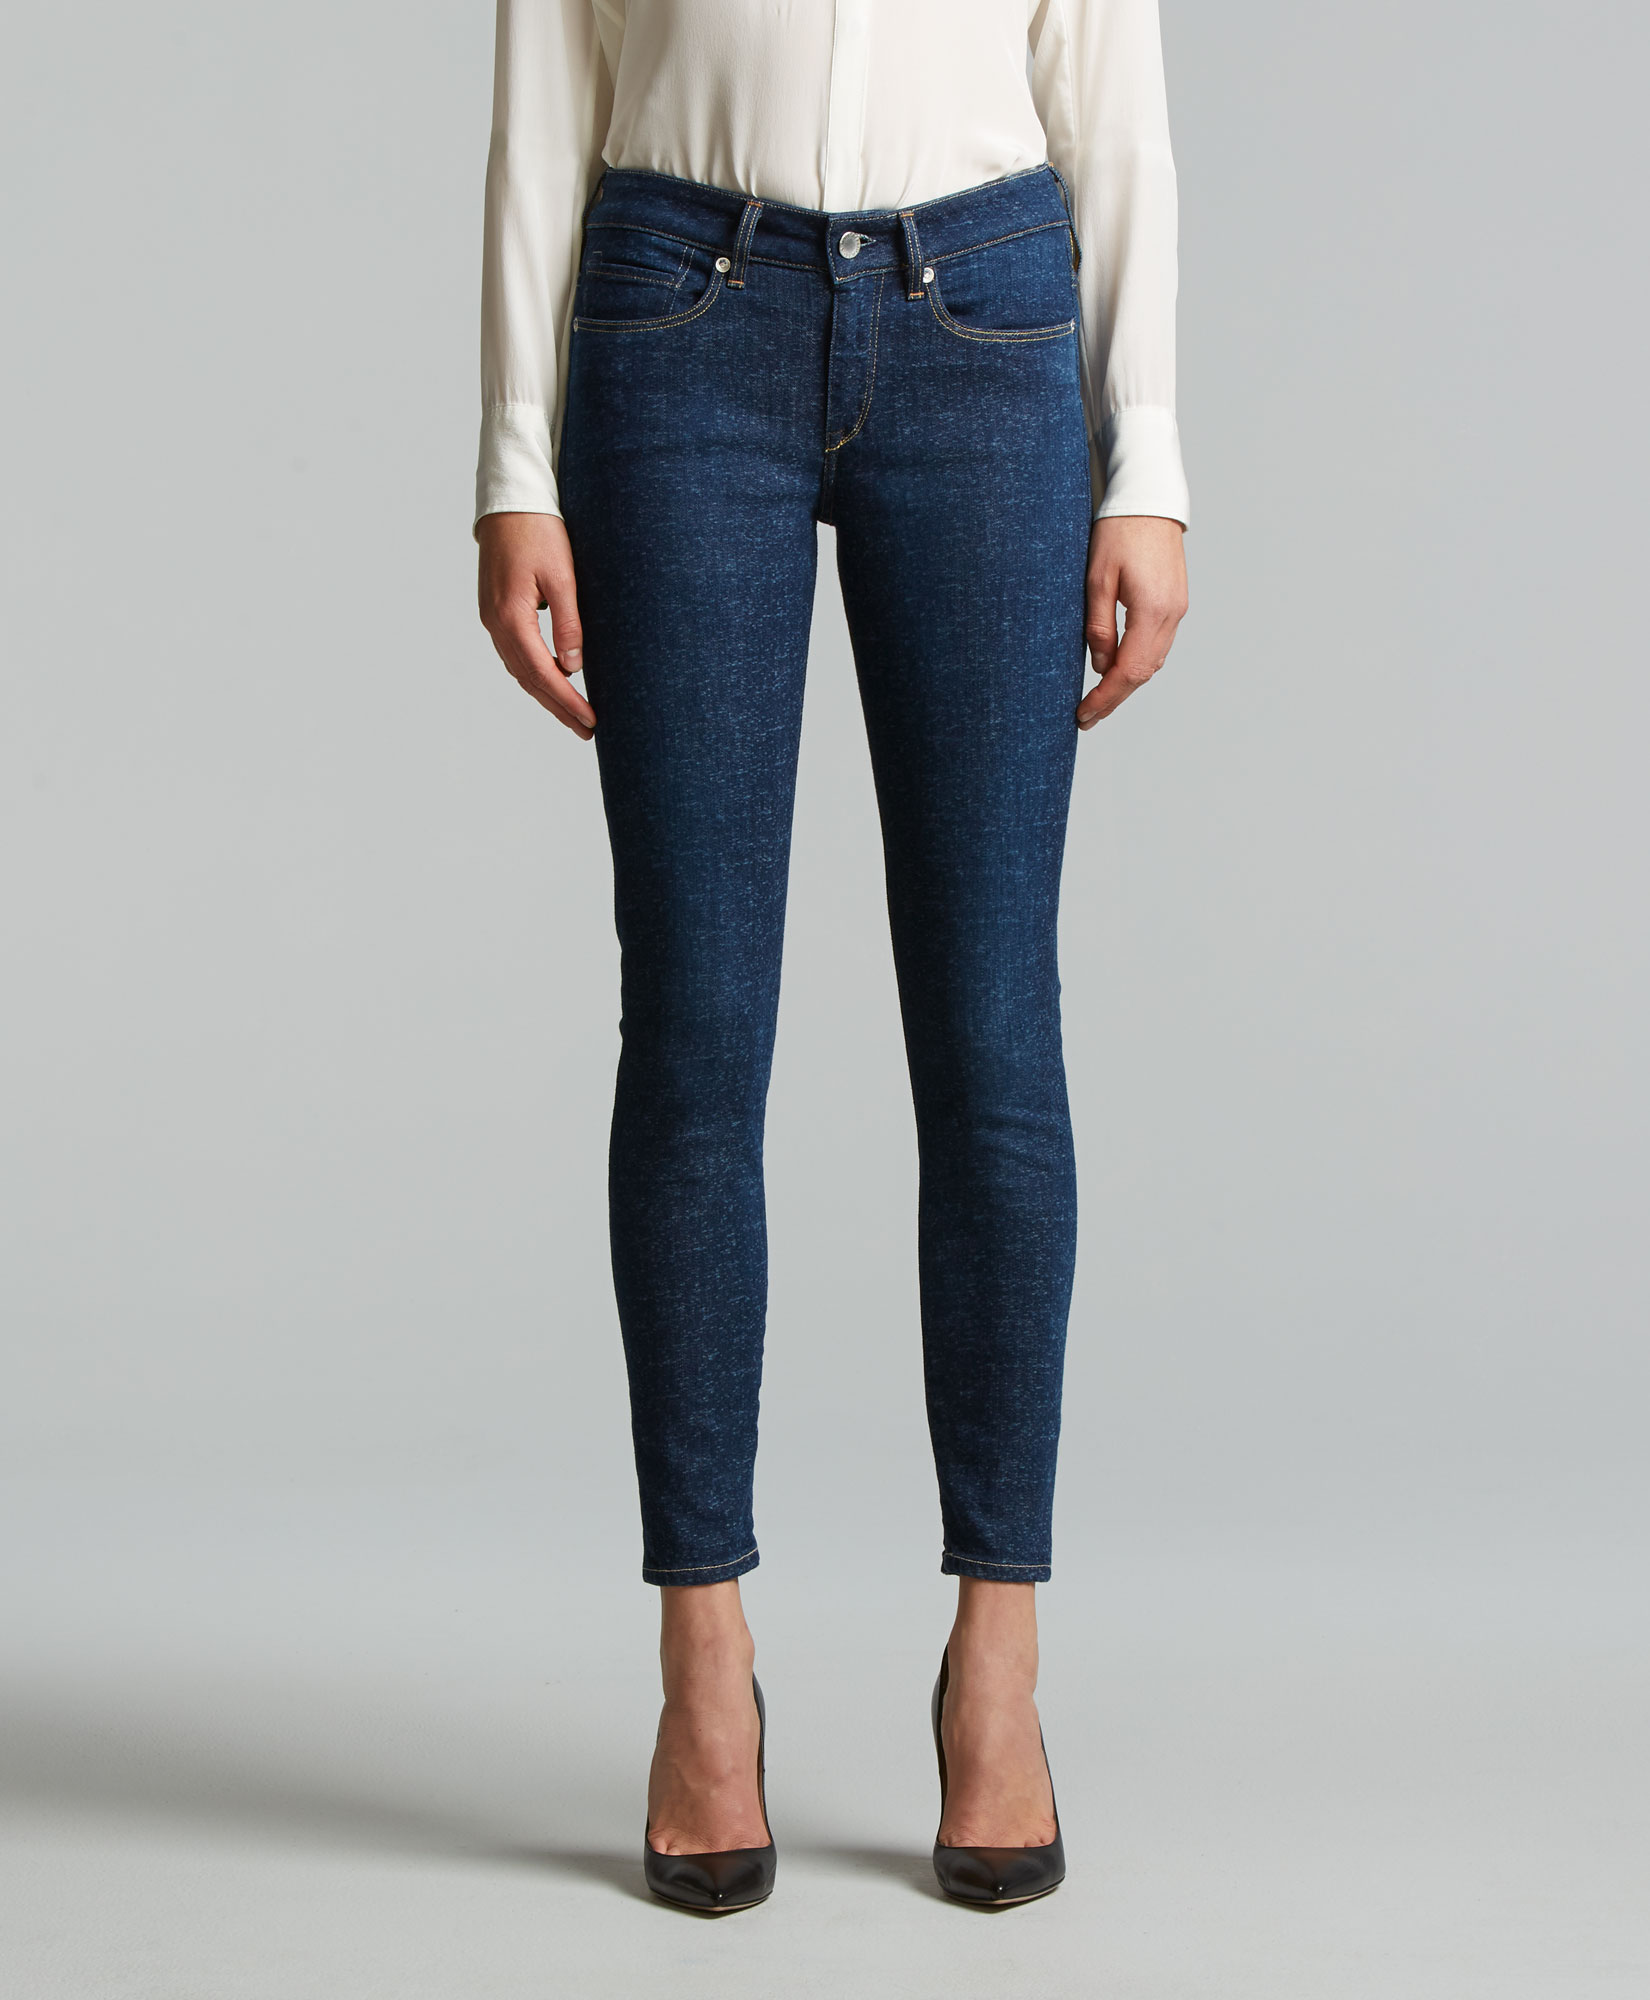 Cropped Skinny Jeans - Solitude